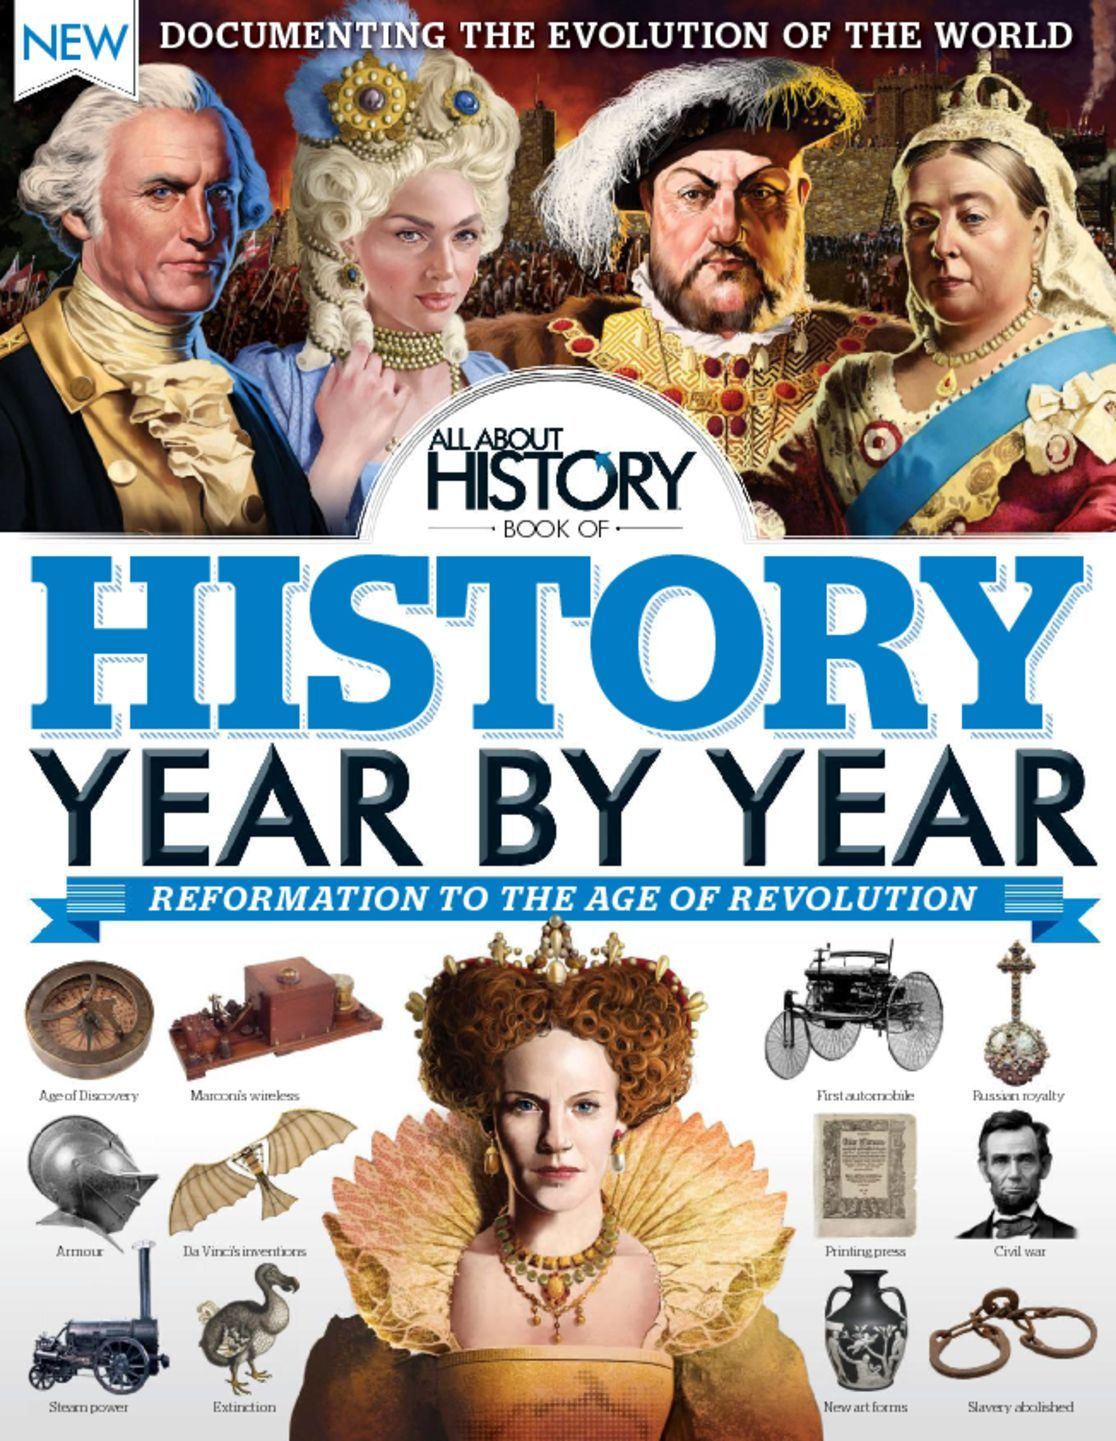 All About History Book of History Year By Year Digital